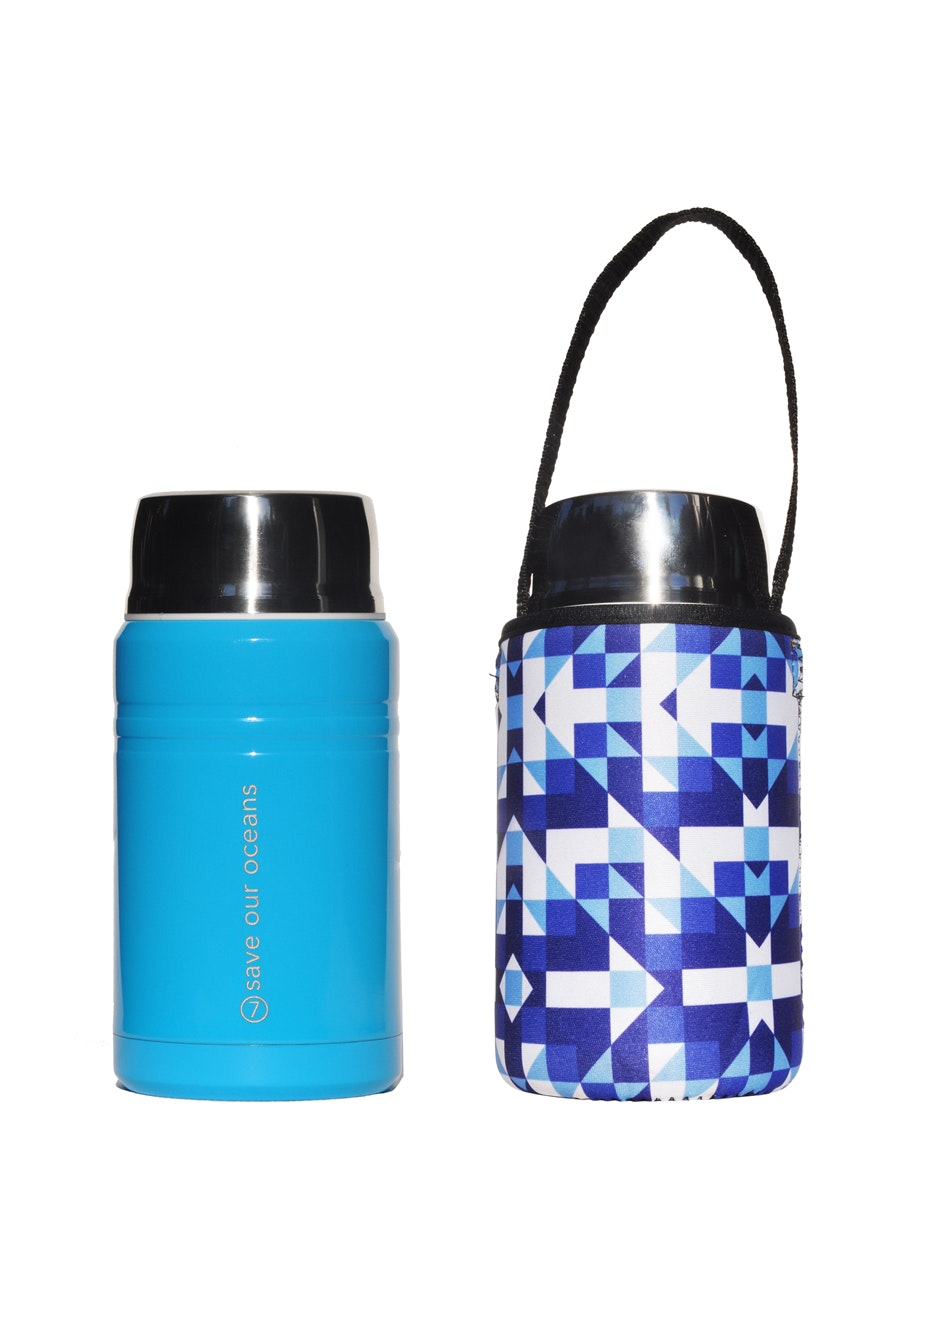 BBBYO - Foodie Insulated lunch container + carry cover 750 ml (Tarx print)- Bright blue